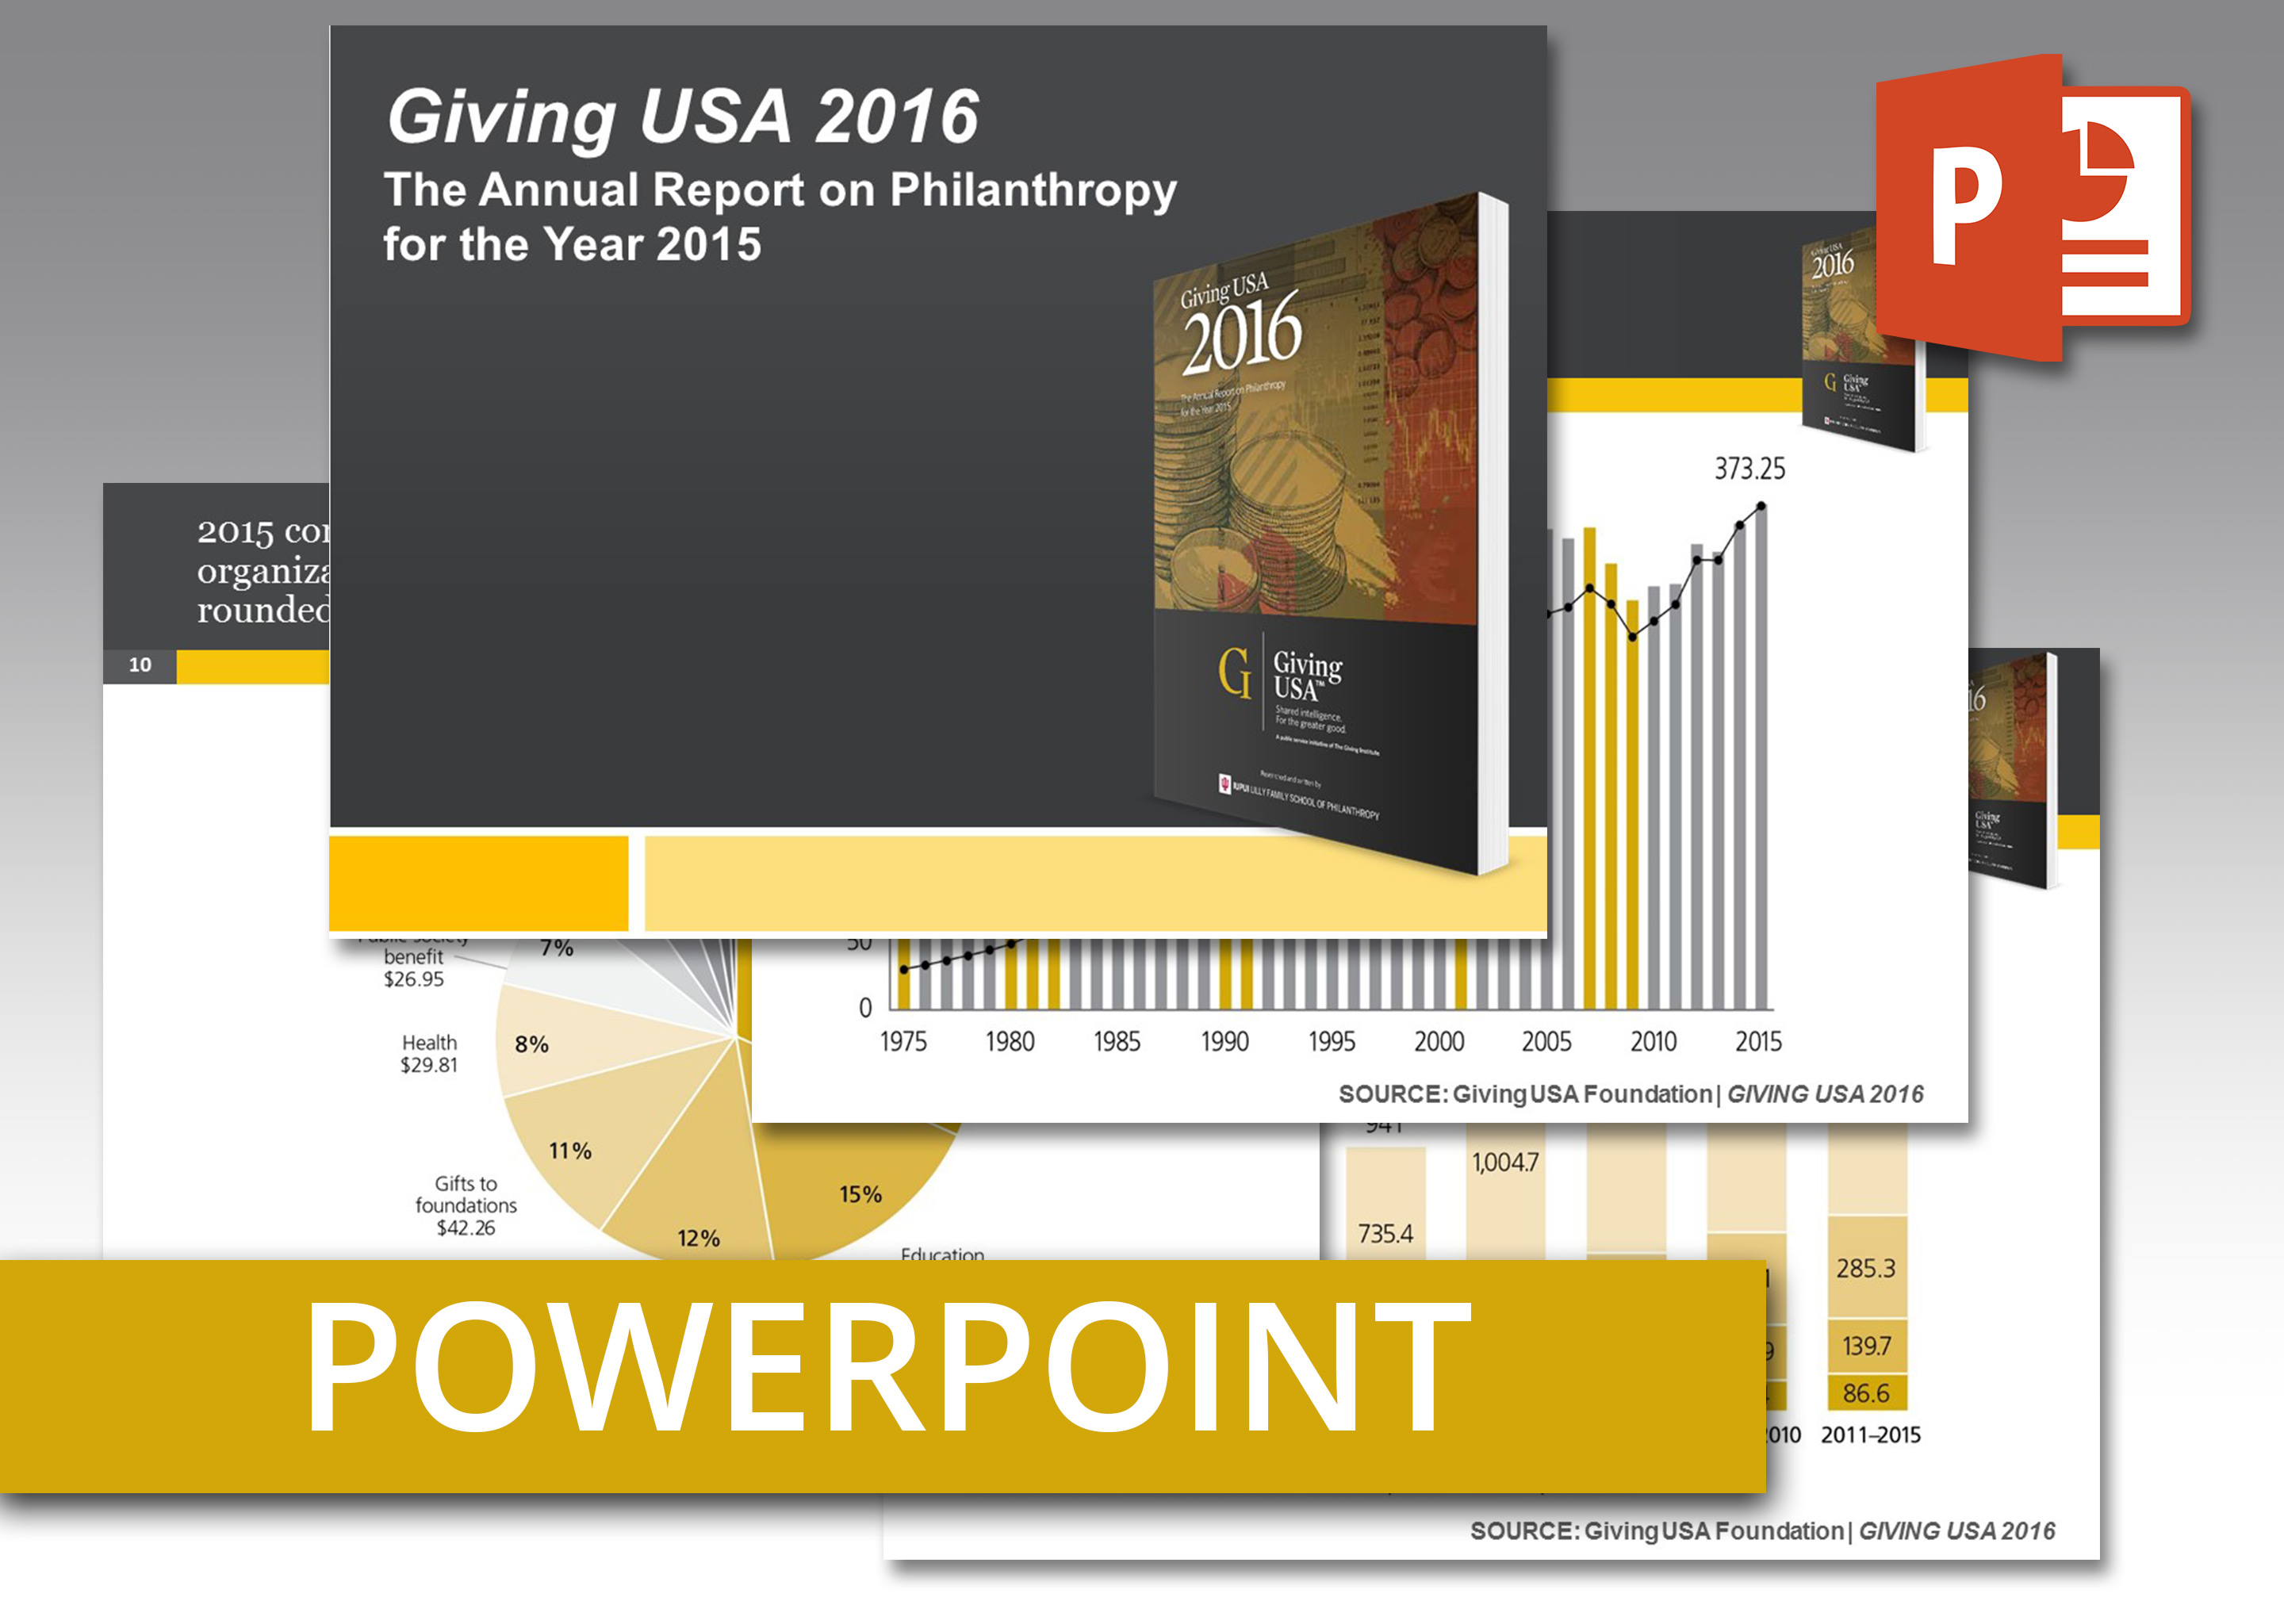 Coolmathgamesus  Gorgeous Giving Usa  Powerpoint An Easytouse Presentation Of Report  With Extraordinary Giving Usa  Powerpoint An Easytouse Presentation Of Report Findings Including Talking Points With Agreeable Download Microsoft Powerpoint For Mac Free Also Examples Of Powerpoint Presentations For Business In Addition Educational Powerpoint Presentations And Download Powerpoint Theme Free As Well As Laws Of Motion Powerpoint Additionally Download Powerpoint Free Full Version From Givingusaorg With Coolmathgamesus  Extraordinary Giving Usa  Powerpoint An Easytouse Presentation Of Report  With Agreeable Giving Usa  Powerpoint An Easytouse Presentation Of Report Findings Including Talking Points And Gorgeous Download Microsoft Powerpoint For Mac Free Also Examples Of Powerpoint Presentations For Business In Addition Educational Powerpoint Presentations From Givingusaorg